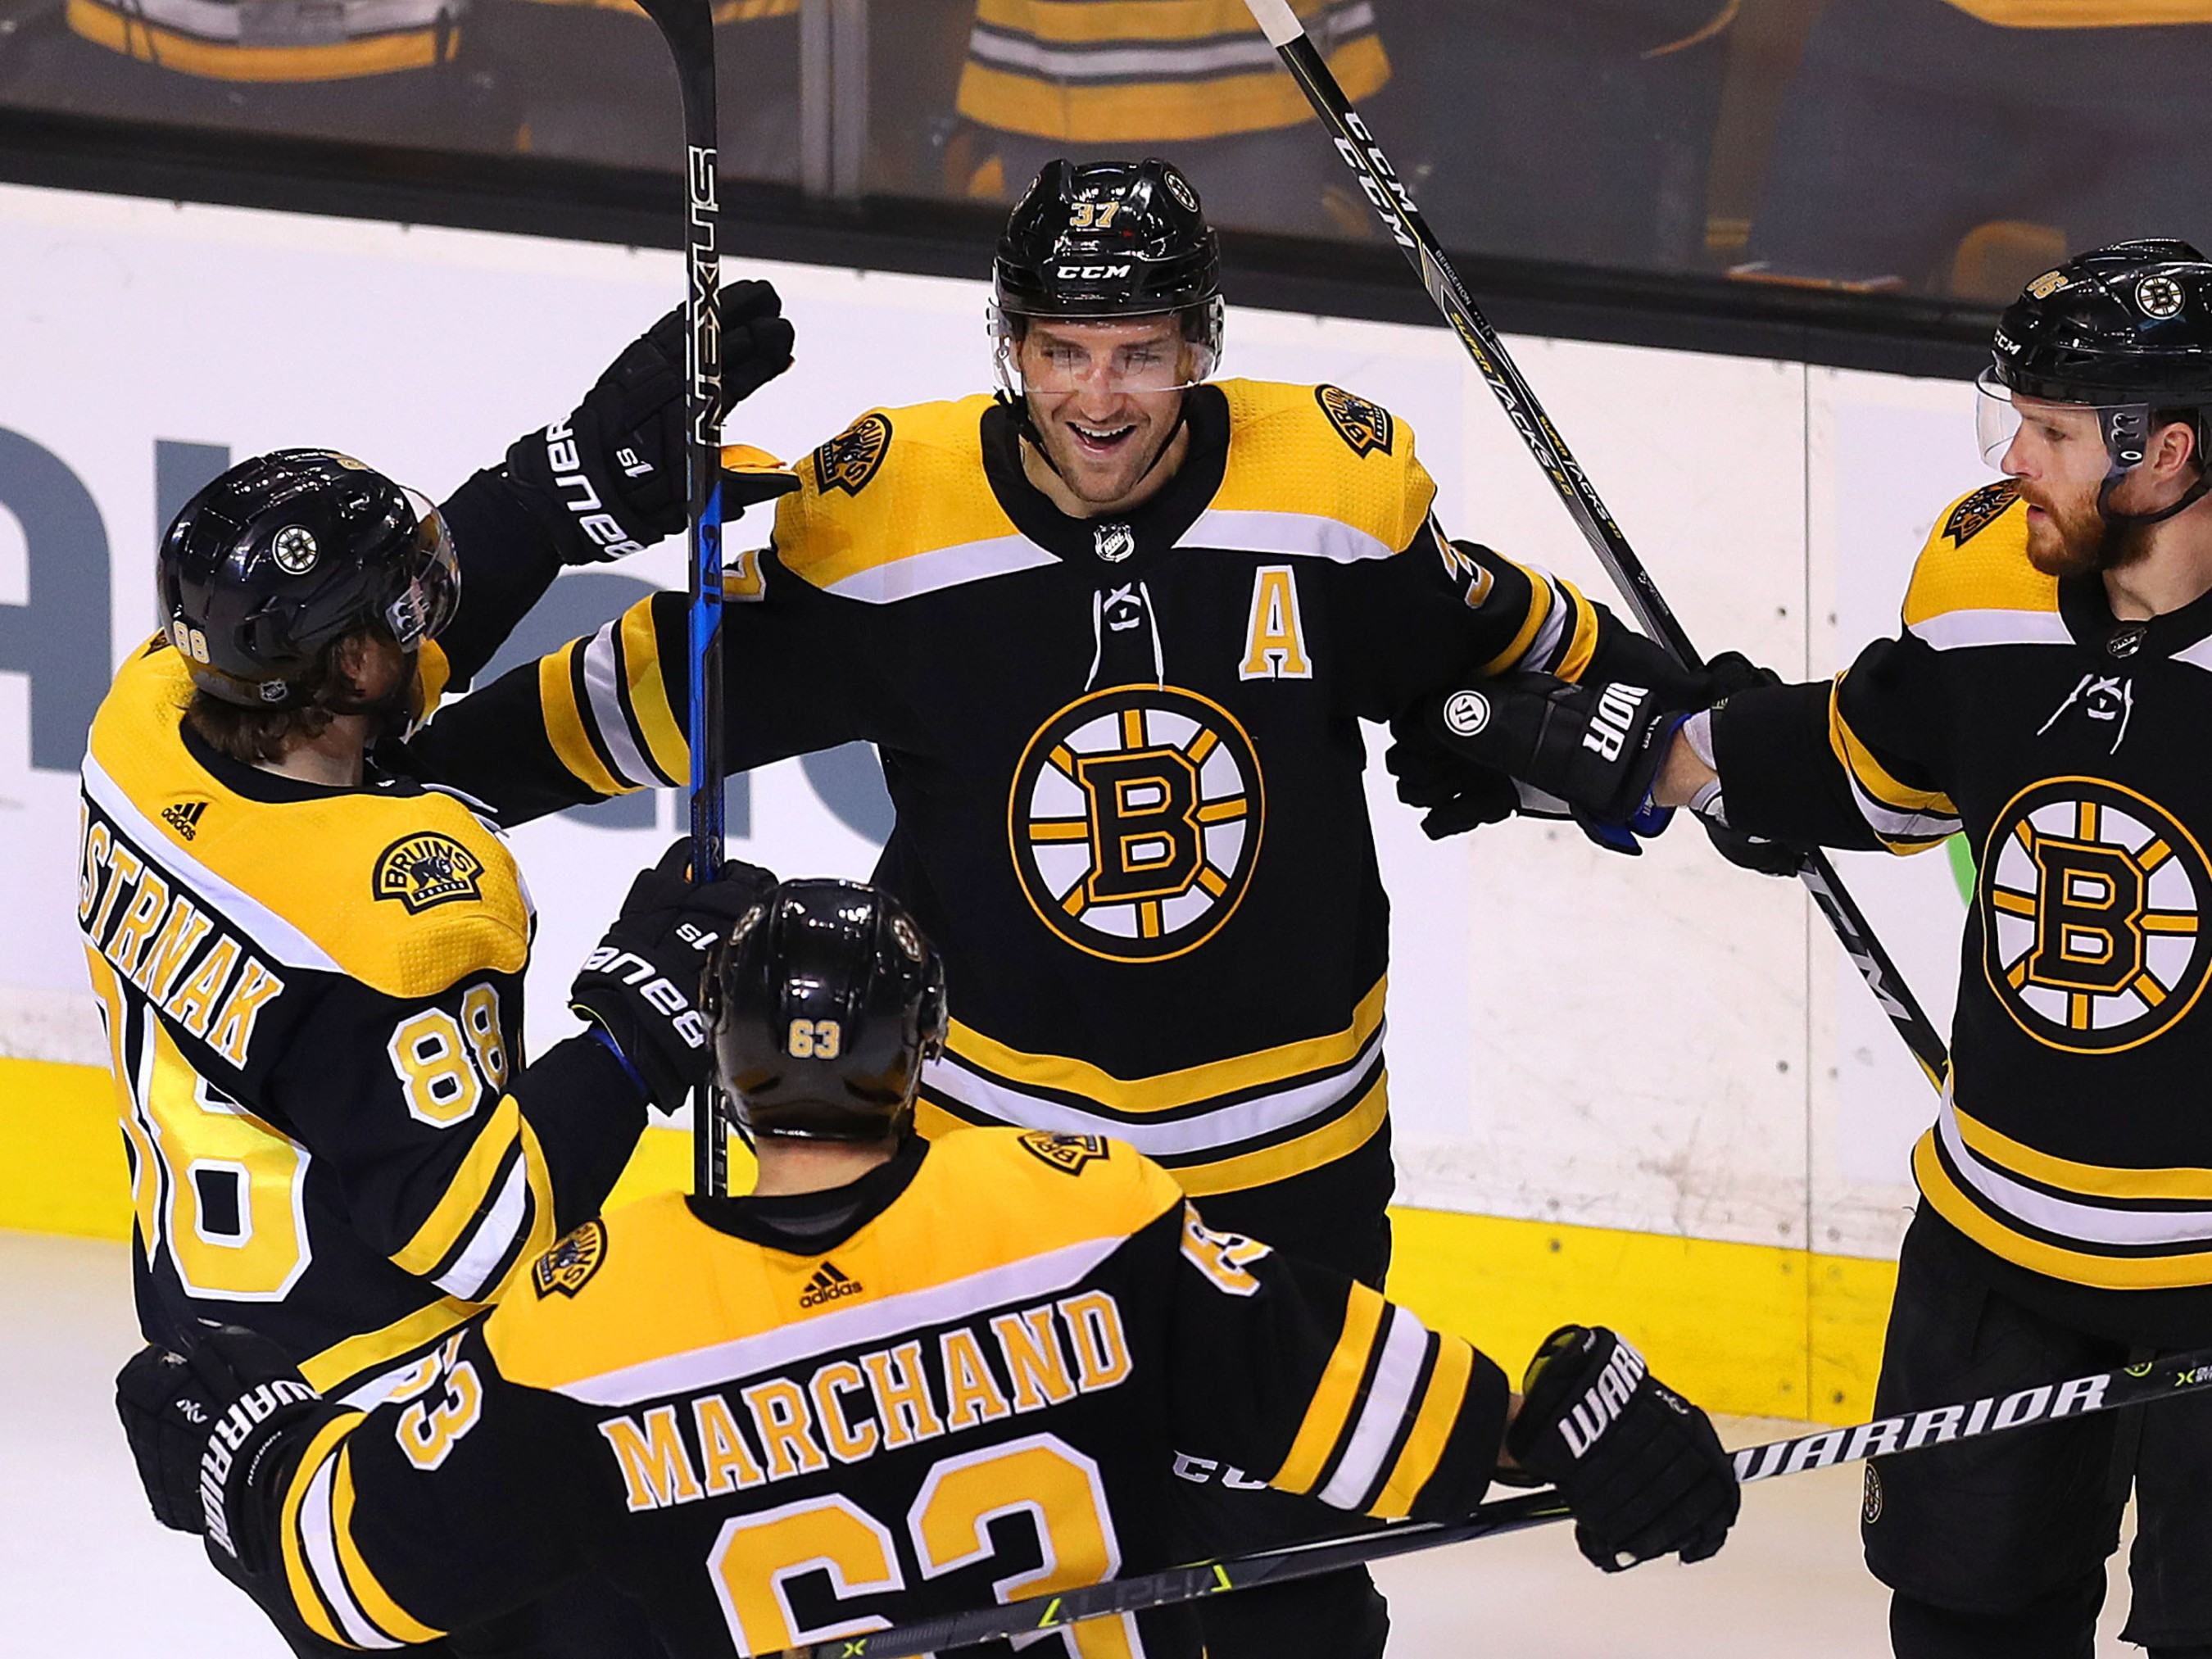 One More Reason To Raise A Fist At Boston Sports: The ...Bruins Hockey